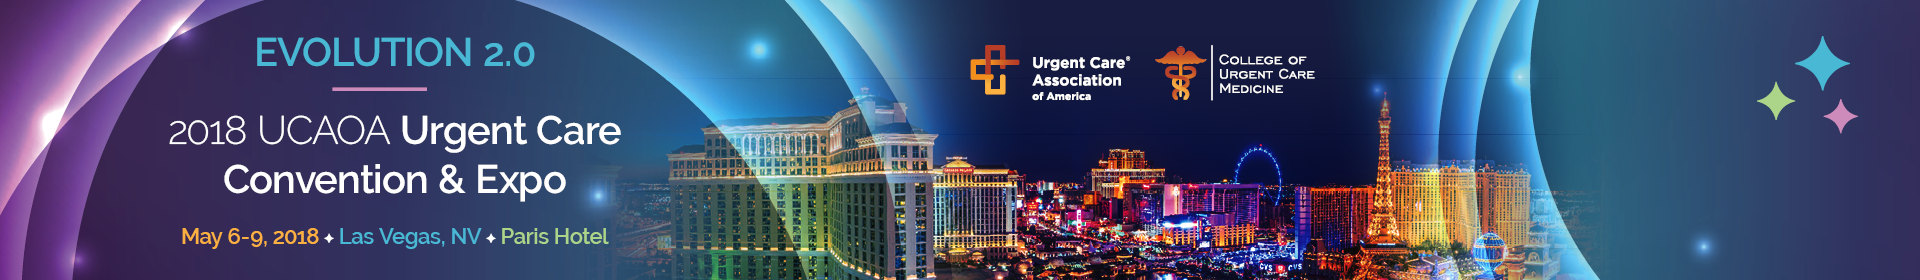 2018 UCAOA Urgent Care Convention & Expo: Evolution 2.0